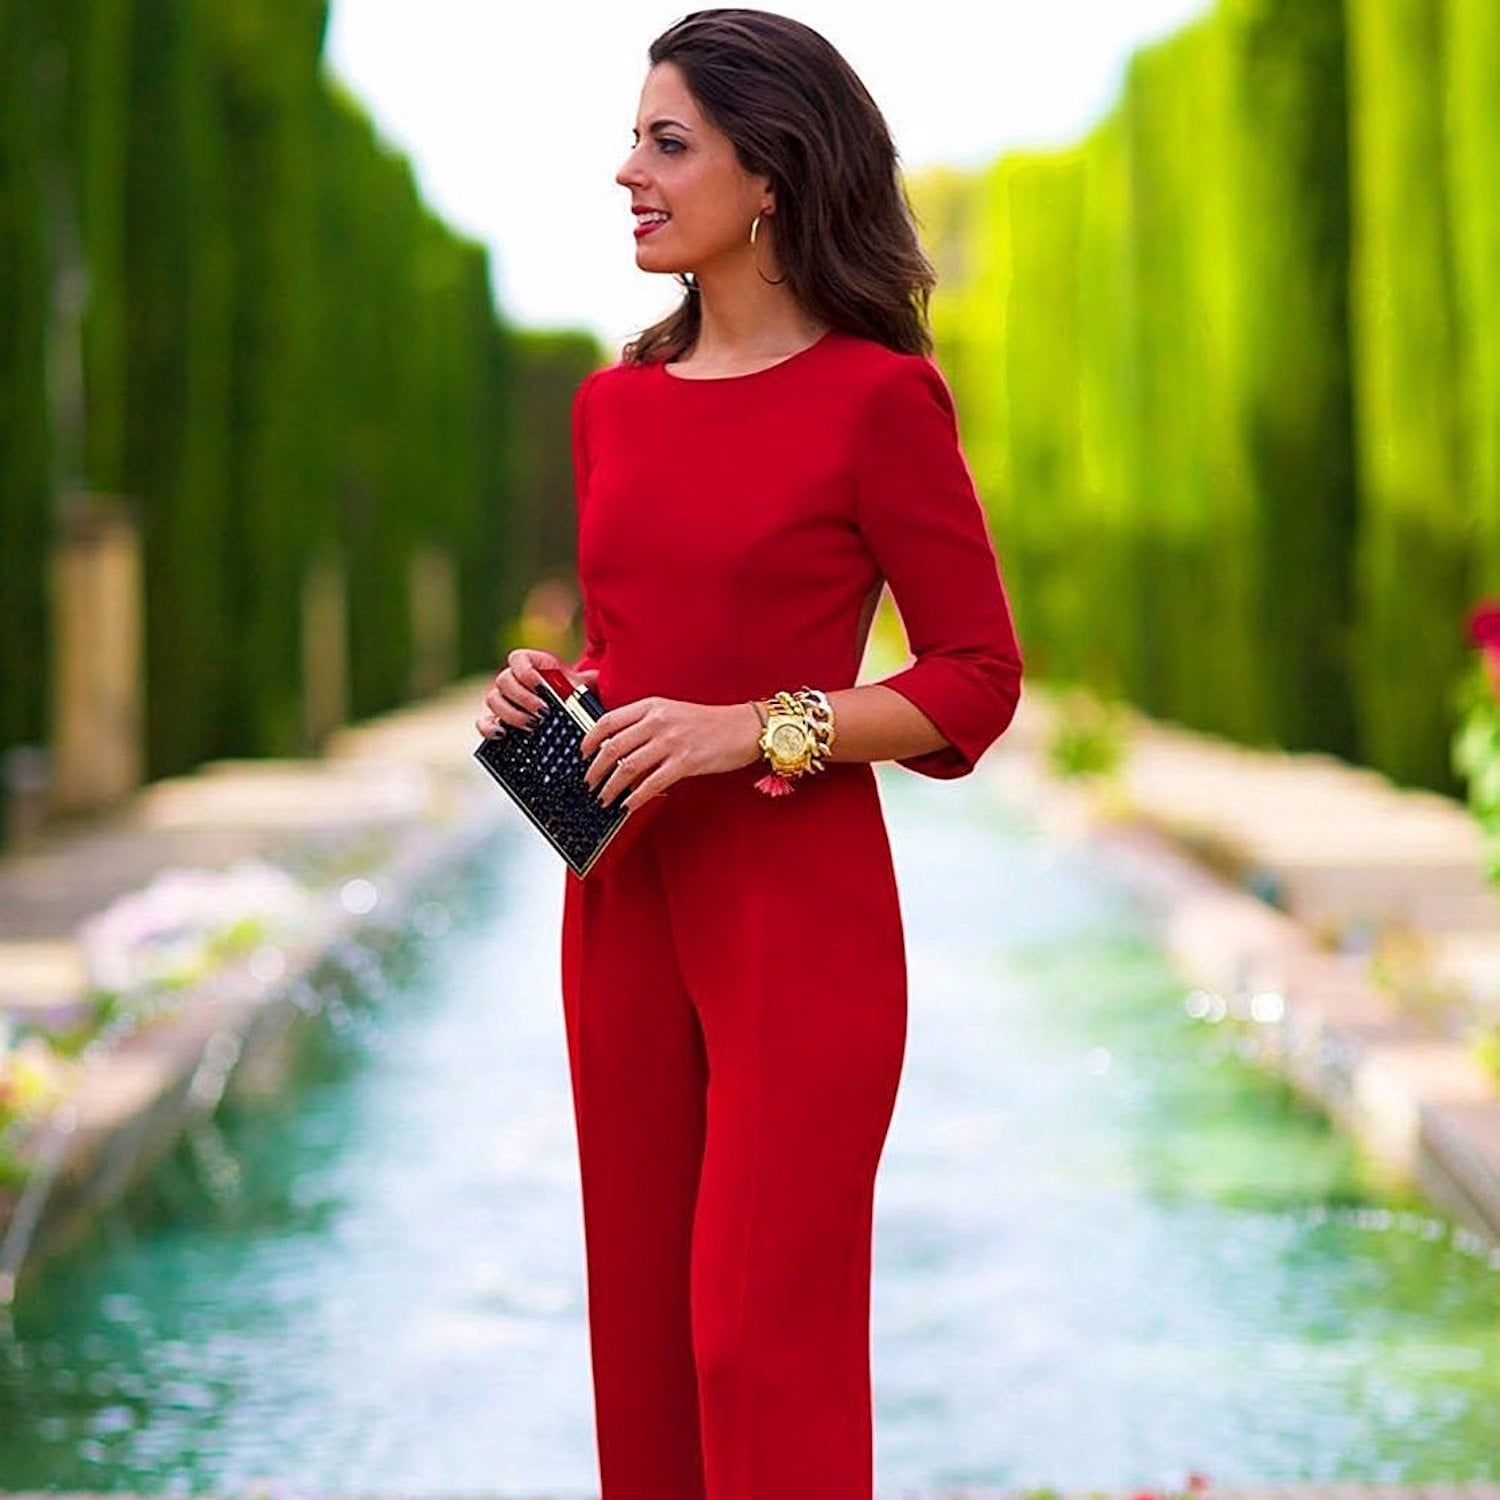 e7564eae15af Dressy Amazon Jumpsuits | POPSUGAR Fashion